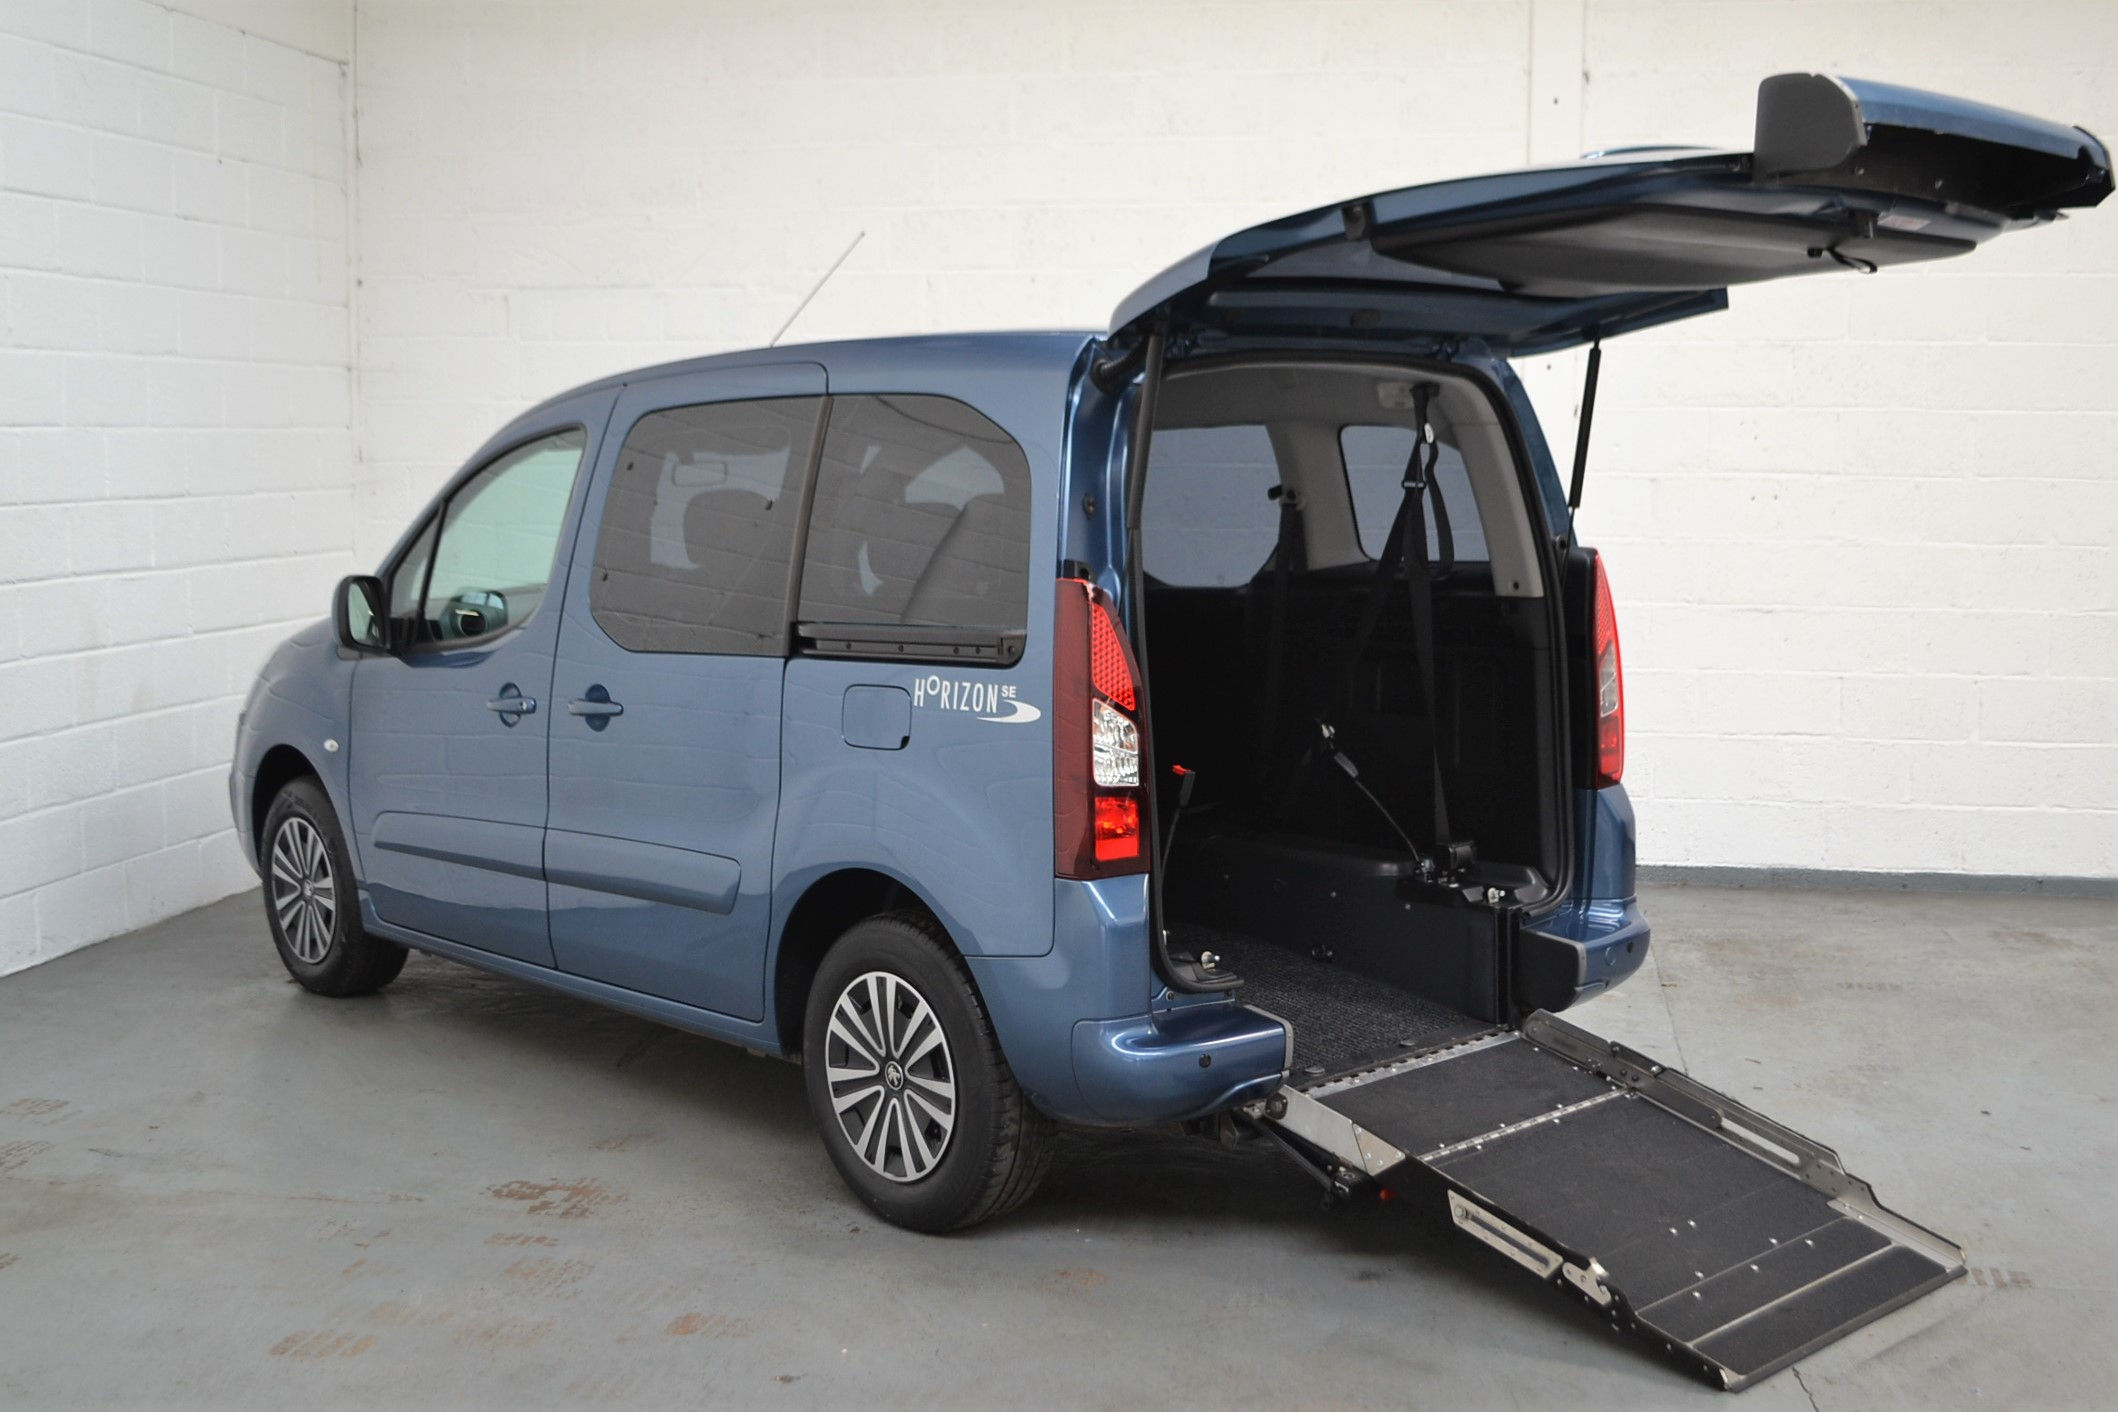 used wav cars for sale wheelchair Peugeot-Partner-1.6-Petrol-Wheelchair-Accessible-Vehicle-61 Bristol Somerset